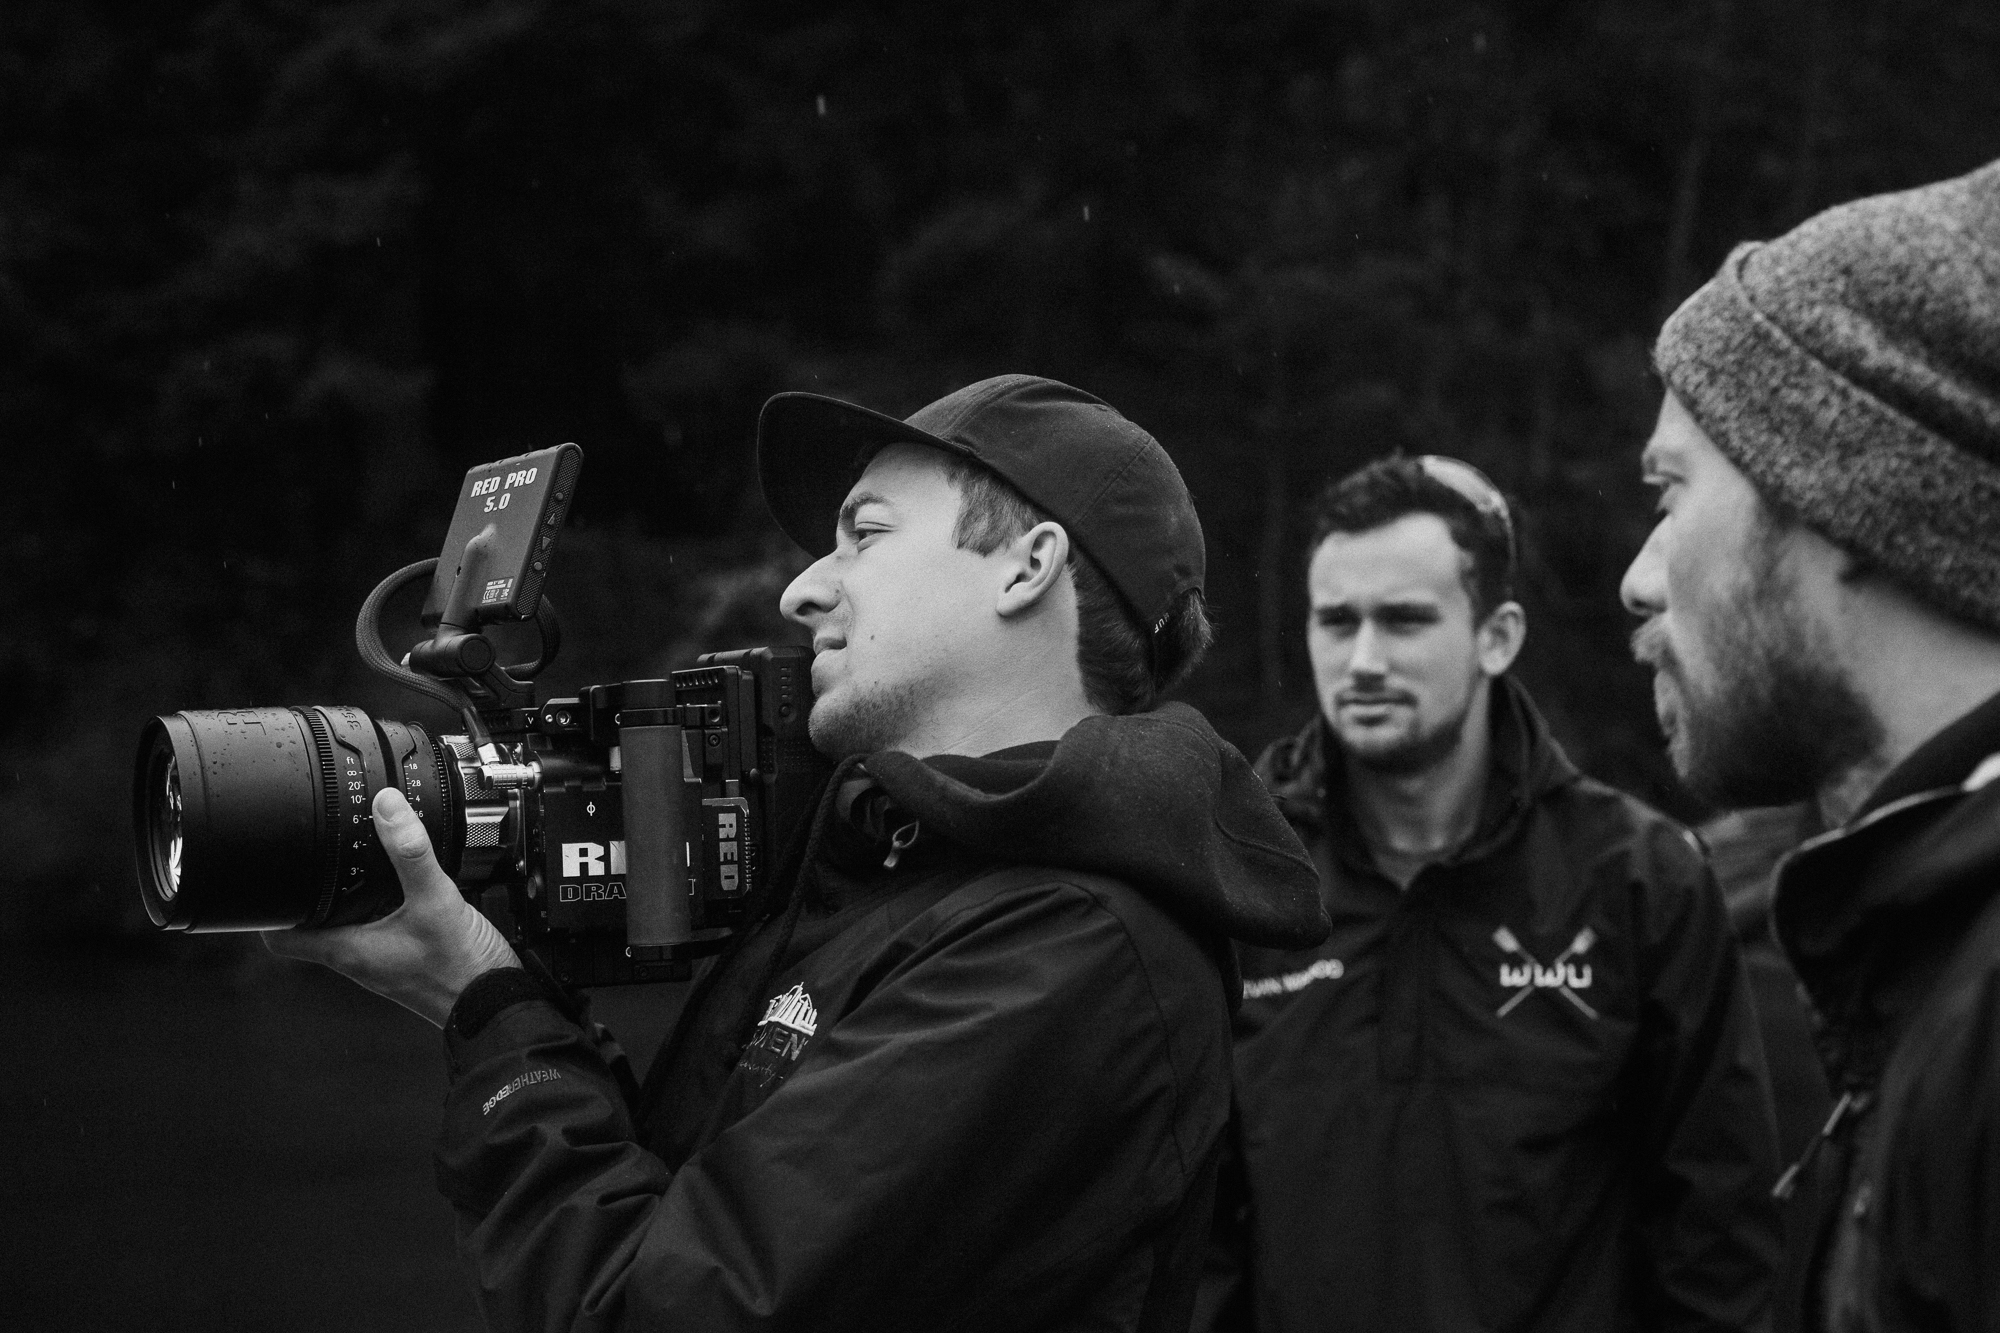 Director and DP working closely on set